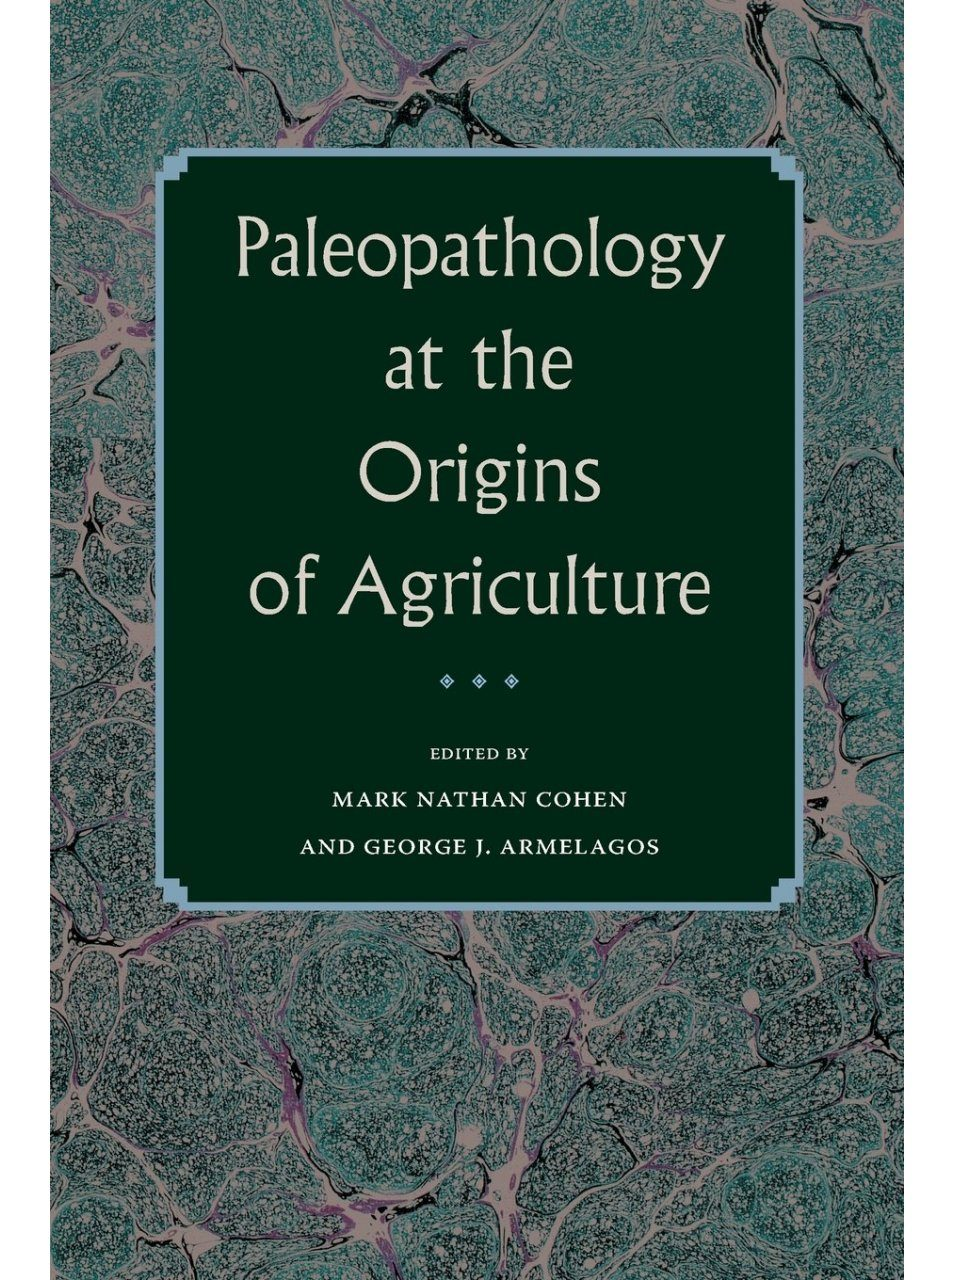 Paleopathology at the Origins of Agriculture